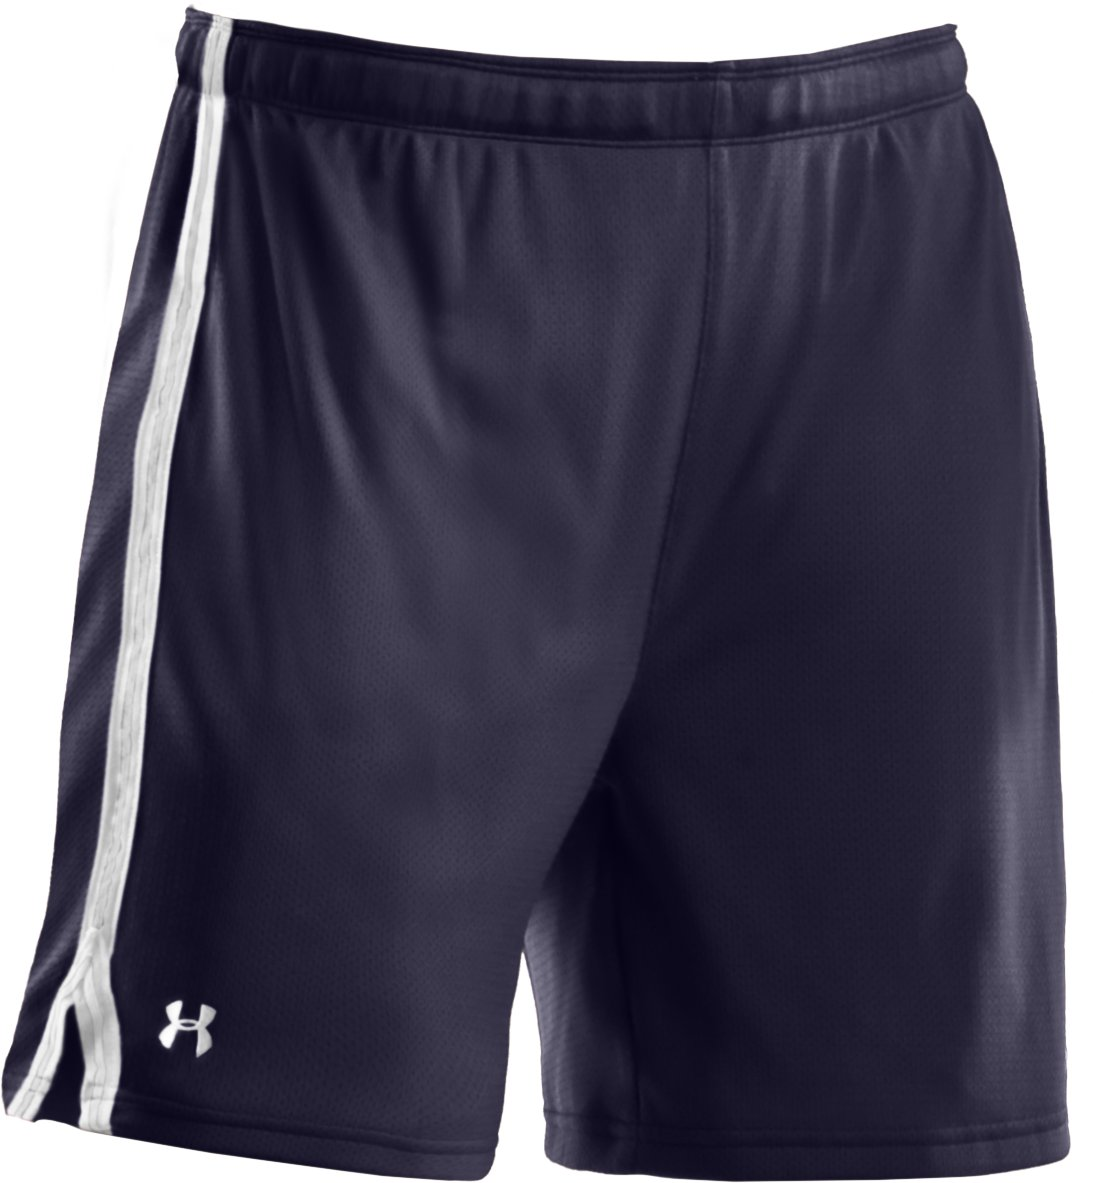 "Women's Skill 6"" Mesh Shorts, Midnight Navy"